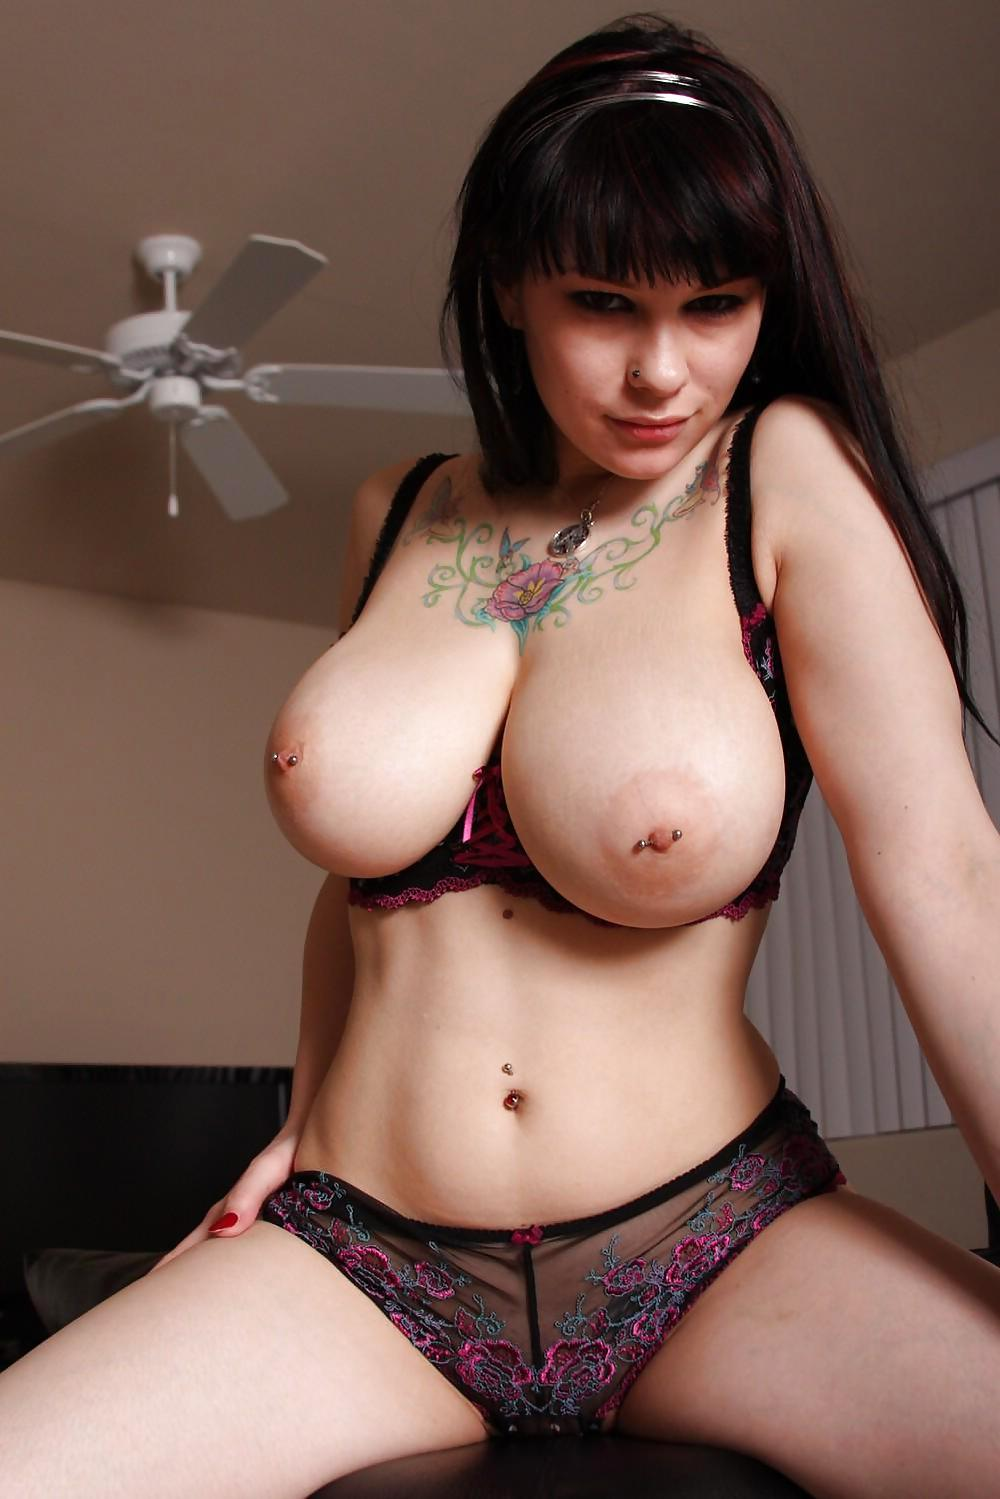 nude-big-boobe-goth-women-extremely-young-pussy-up-close